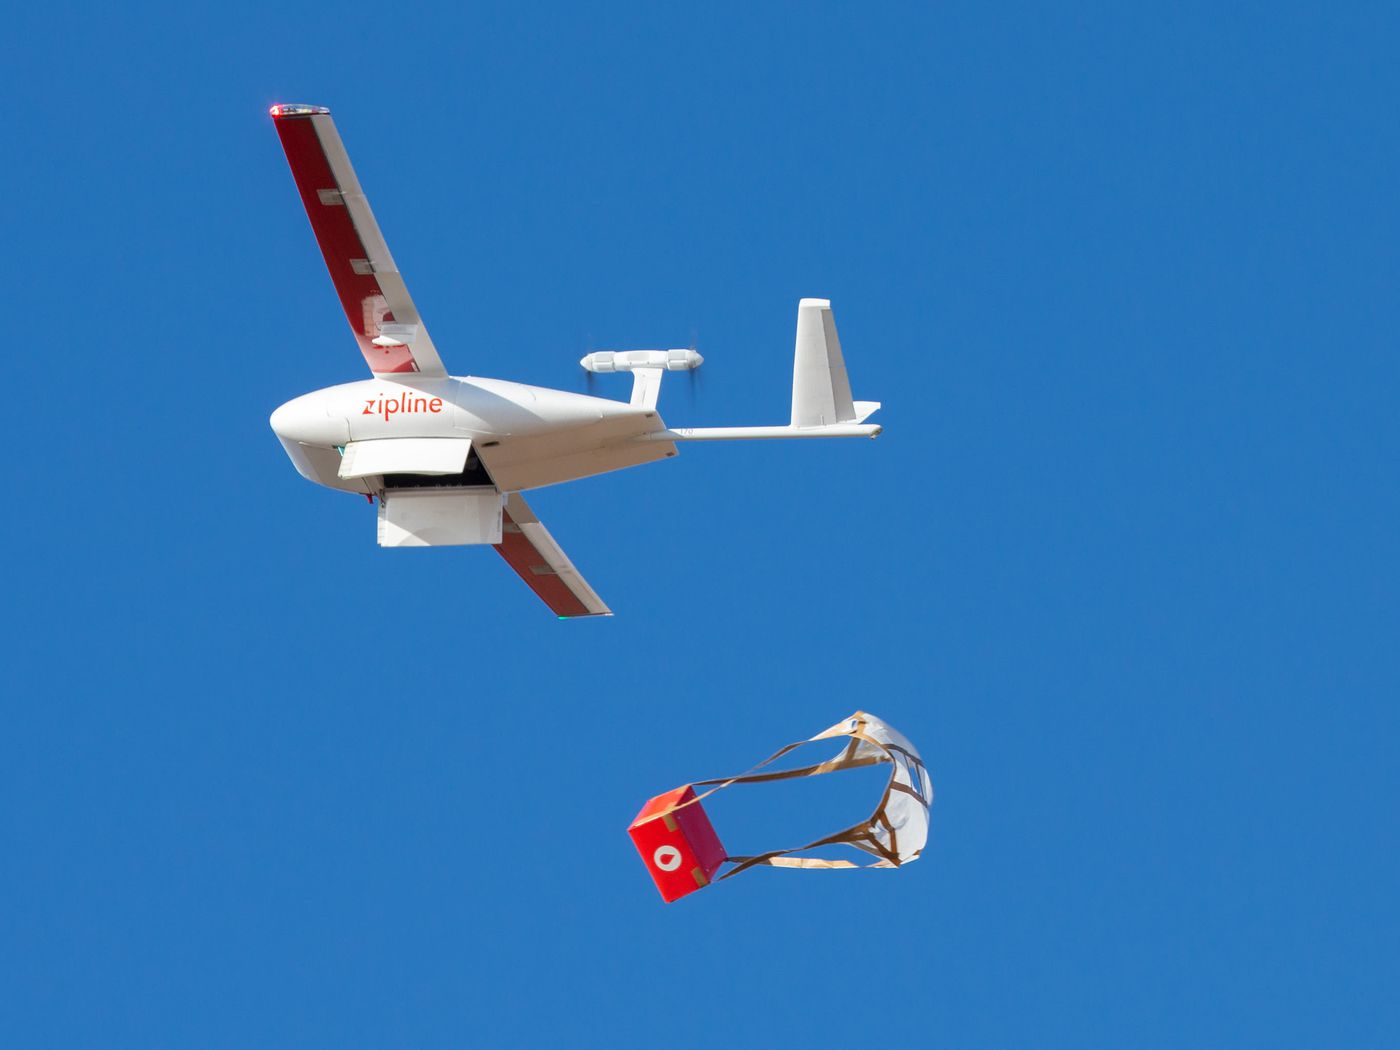 Zipline's drones are delivering medical supplies and PPE in North ...